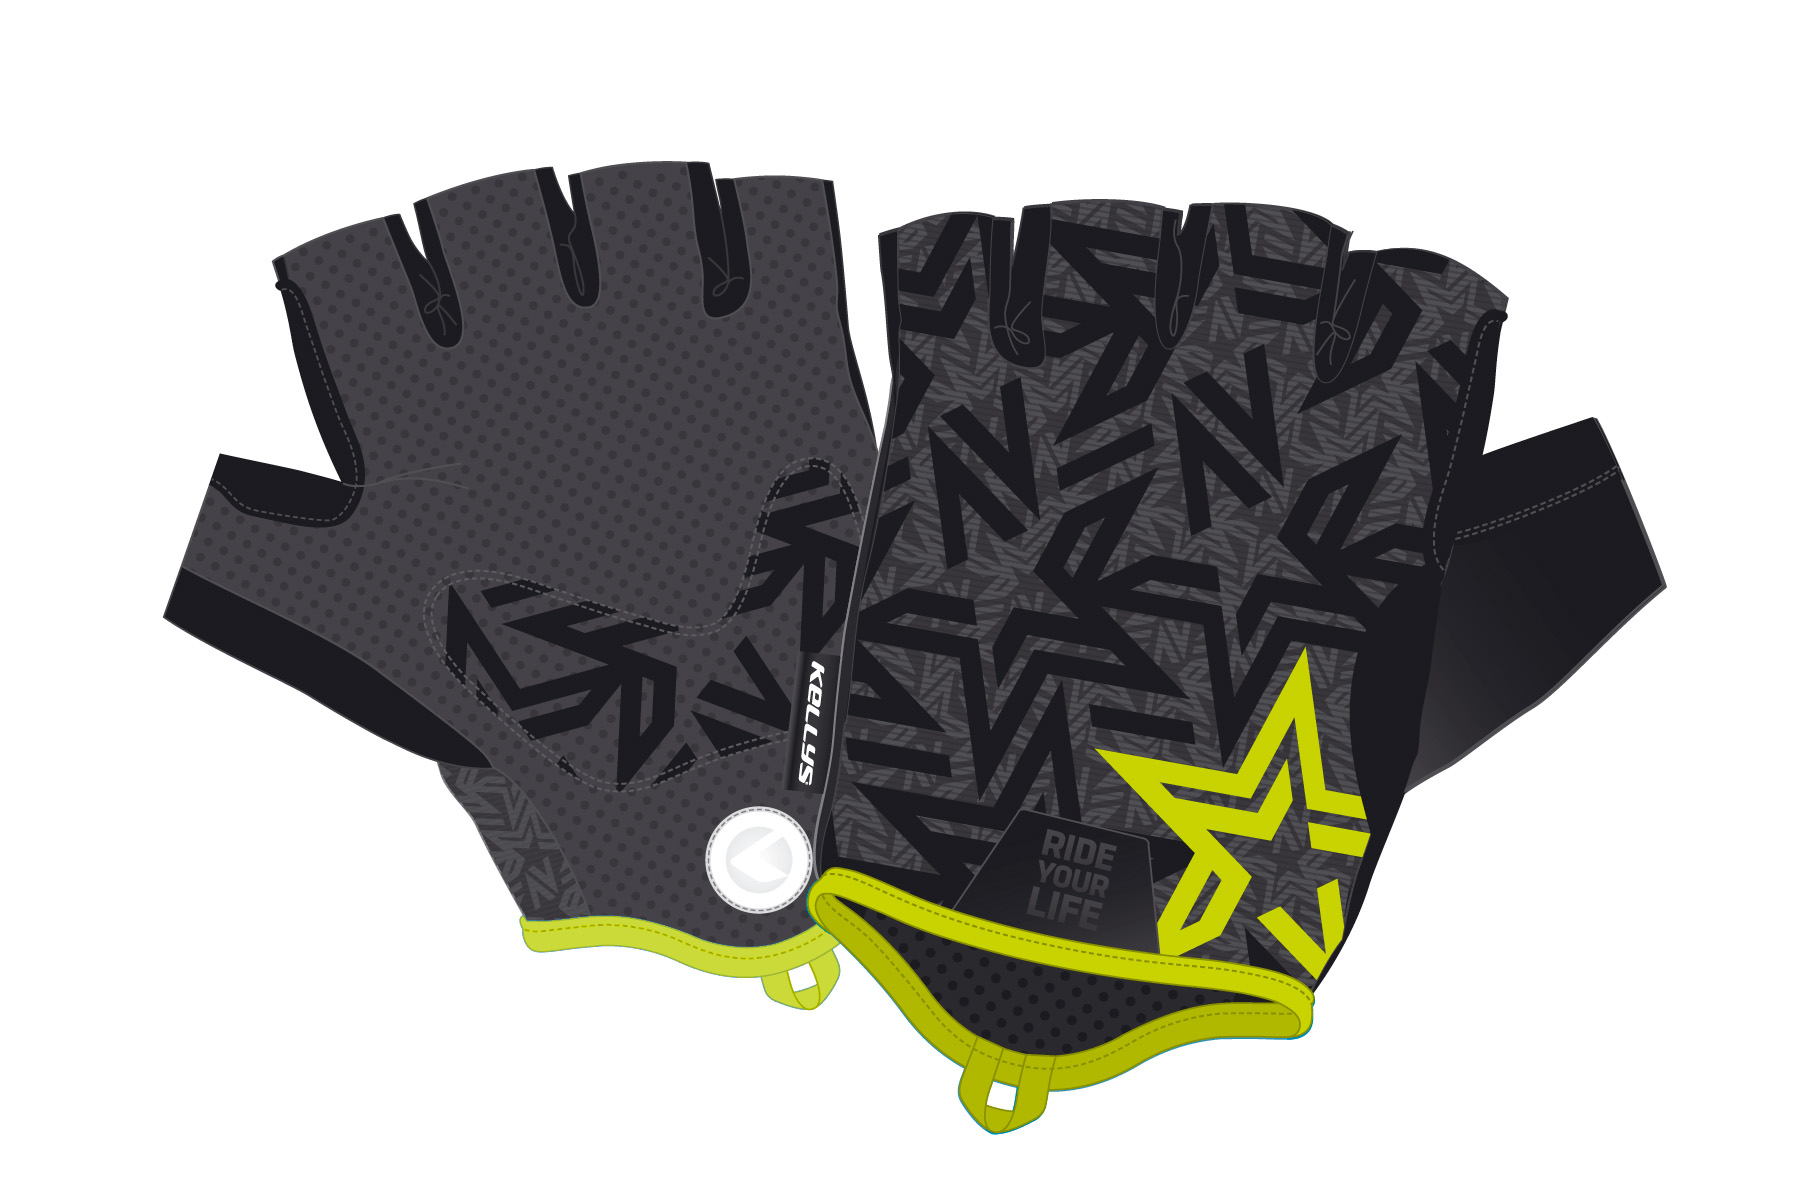 Handschuhe IMPULSE short lime L - Mile-Multisport